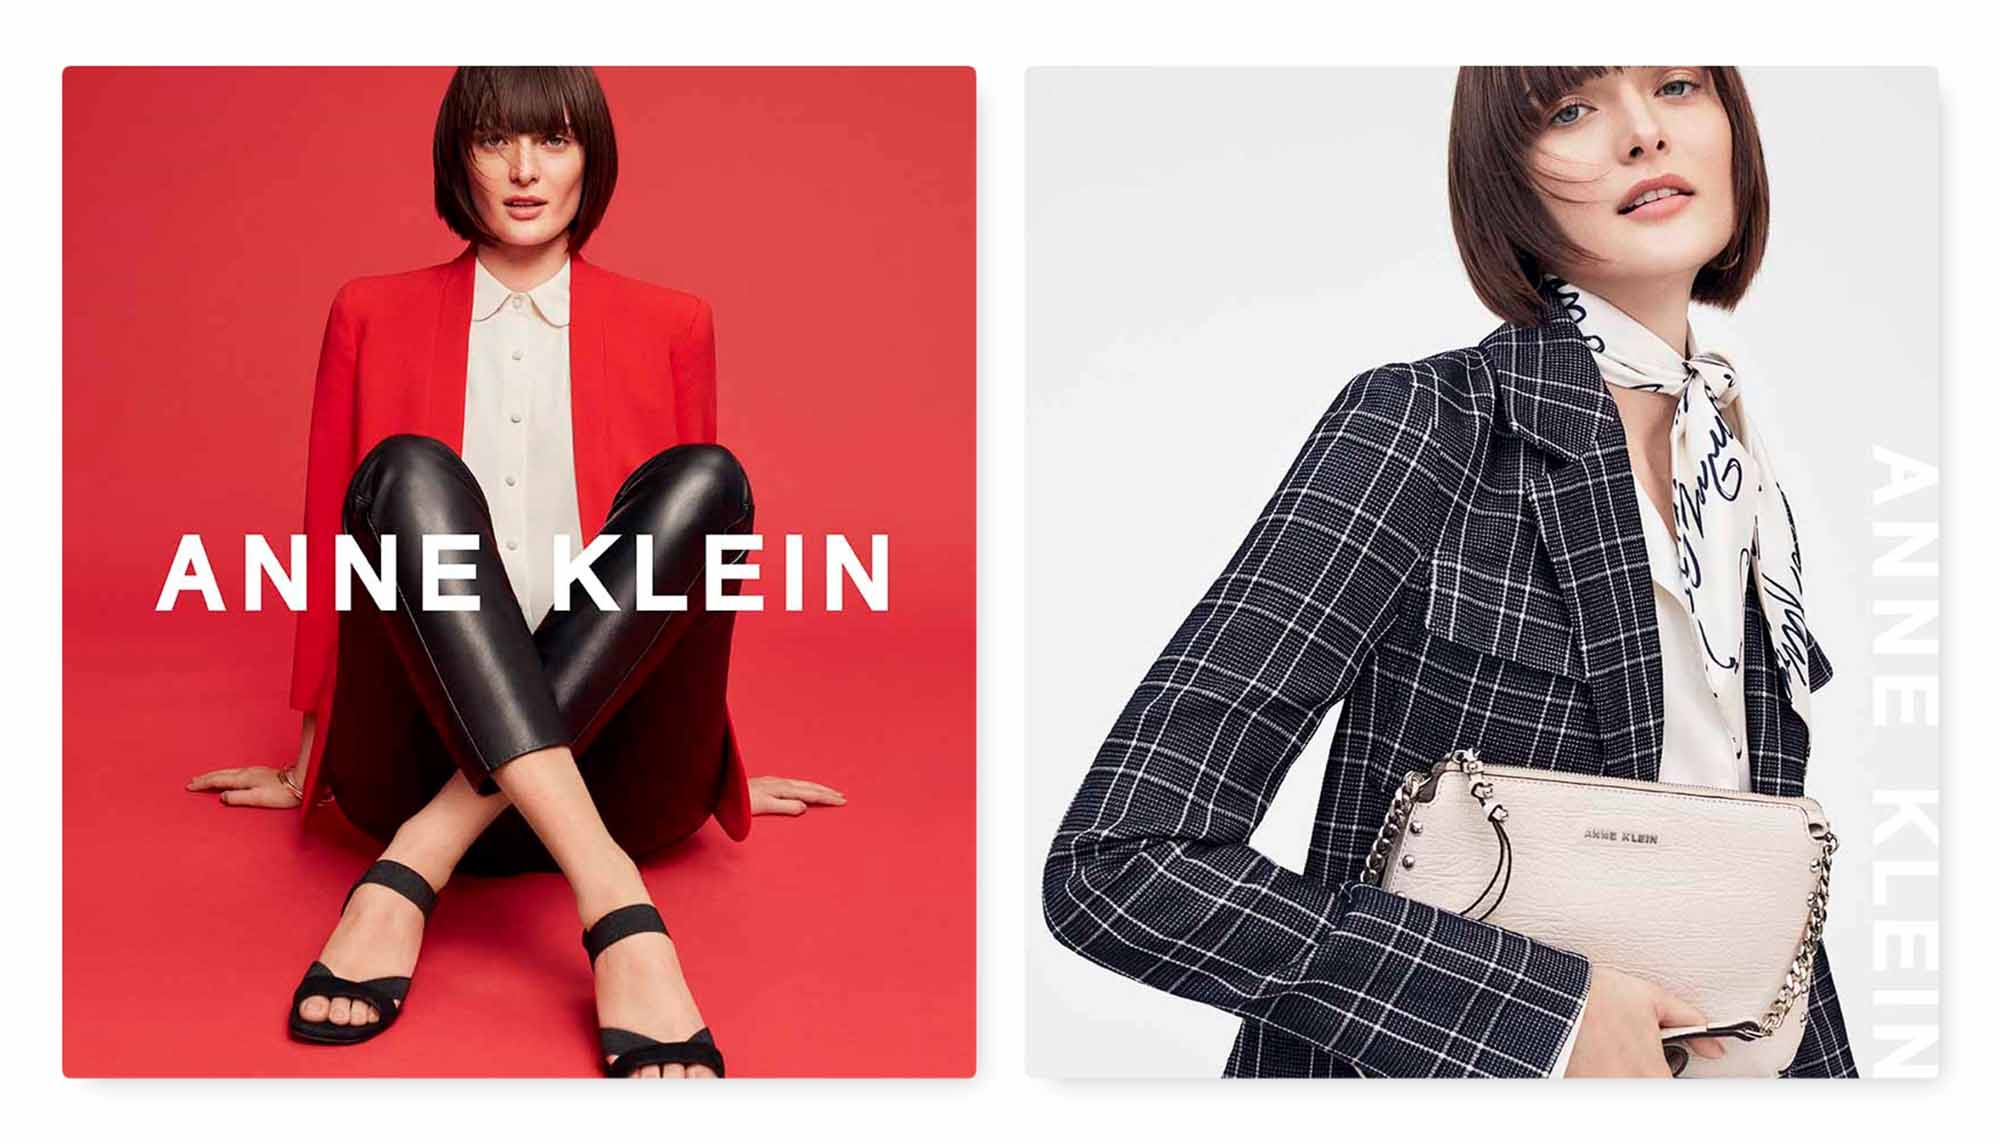 Anne Klein Spring 2020 Campaign Focuses on its Timeless Style